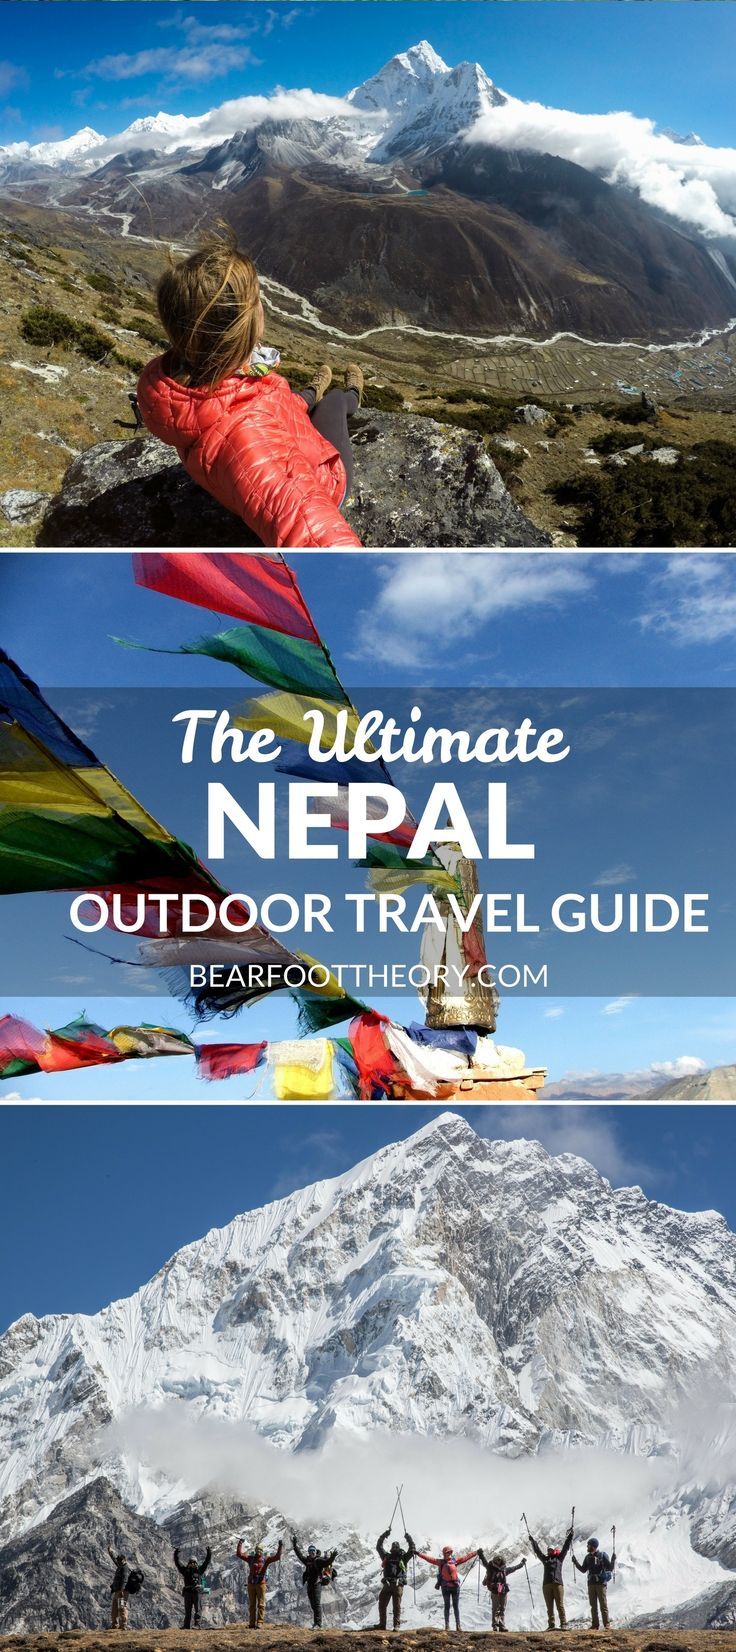 Plan an adventurous trip to Nepal with our outdoor travel guide featuring the best outdoor activities, Everest Basecamp info & most popular blog posts.